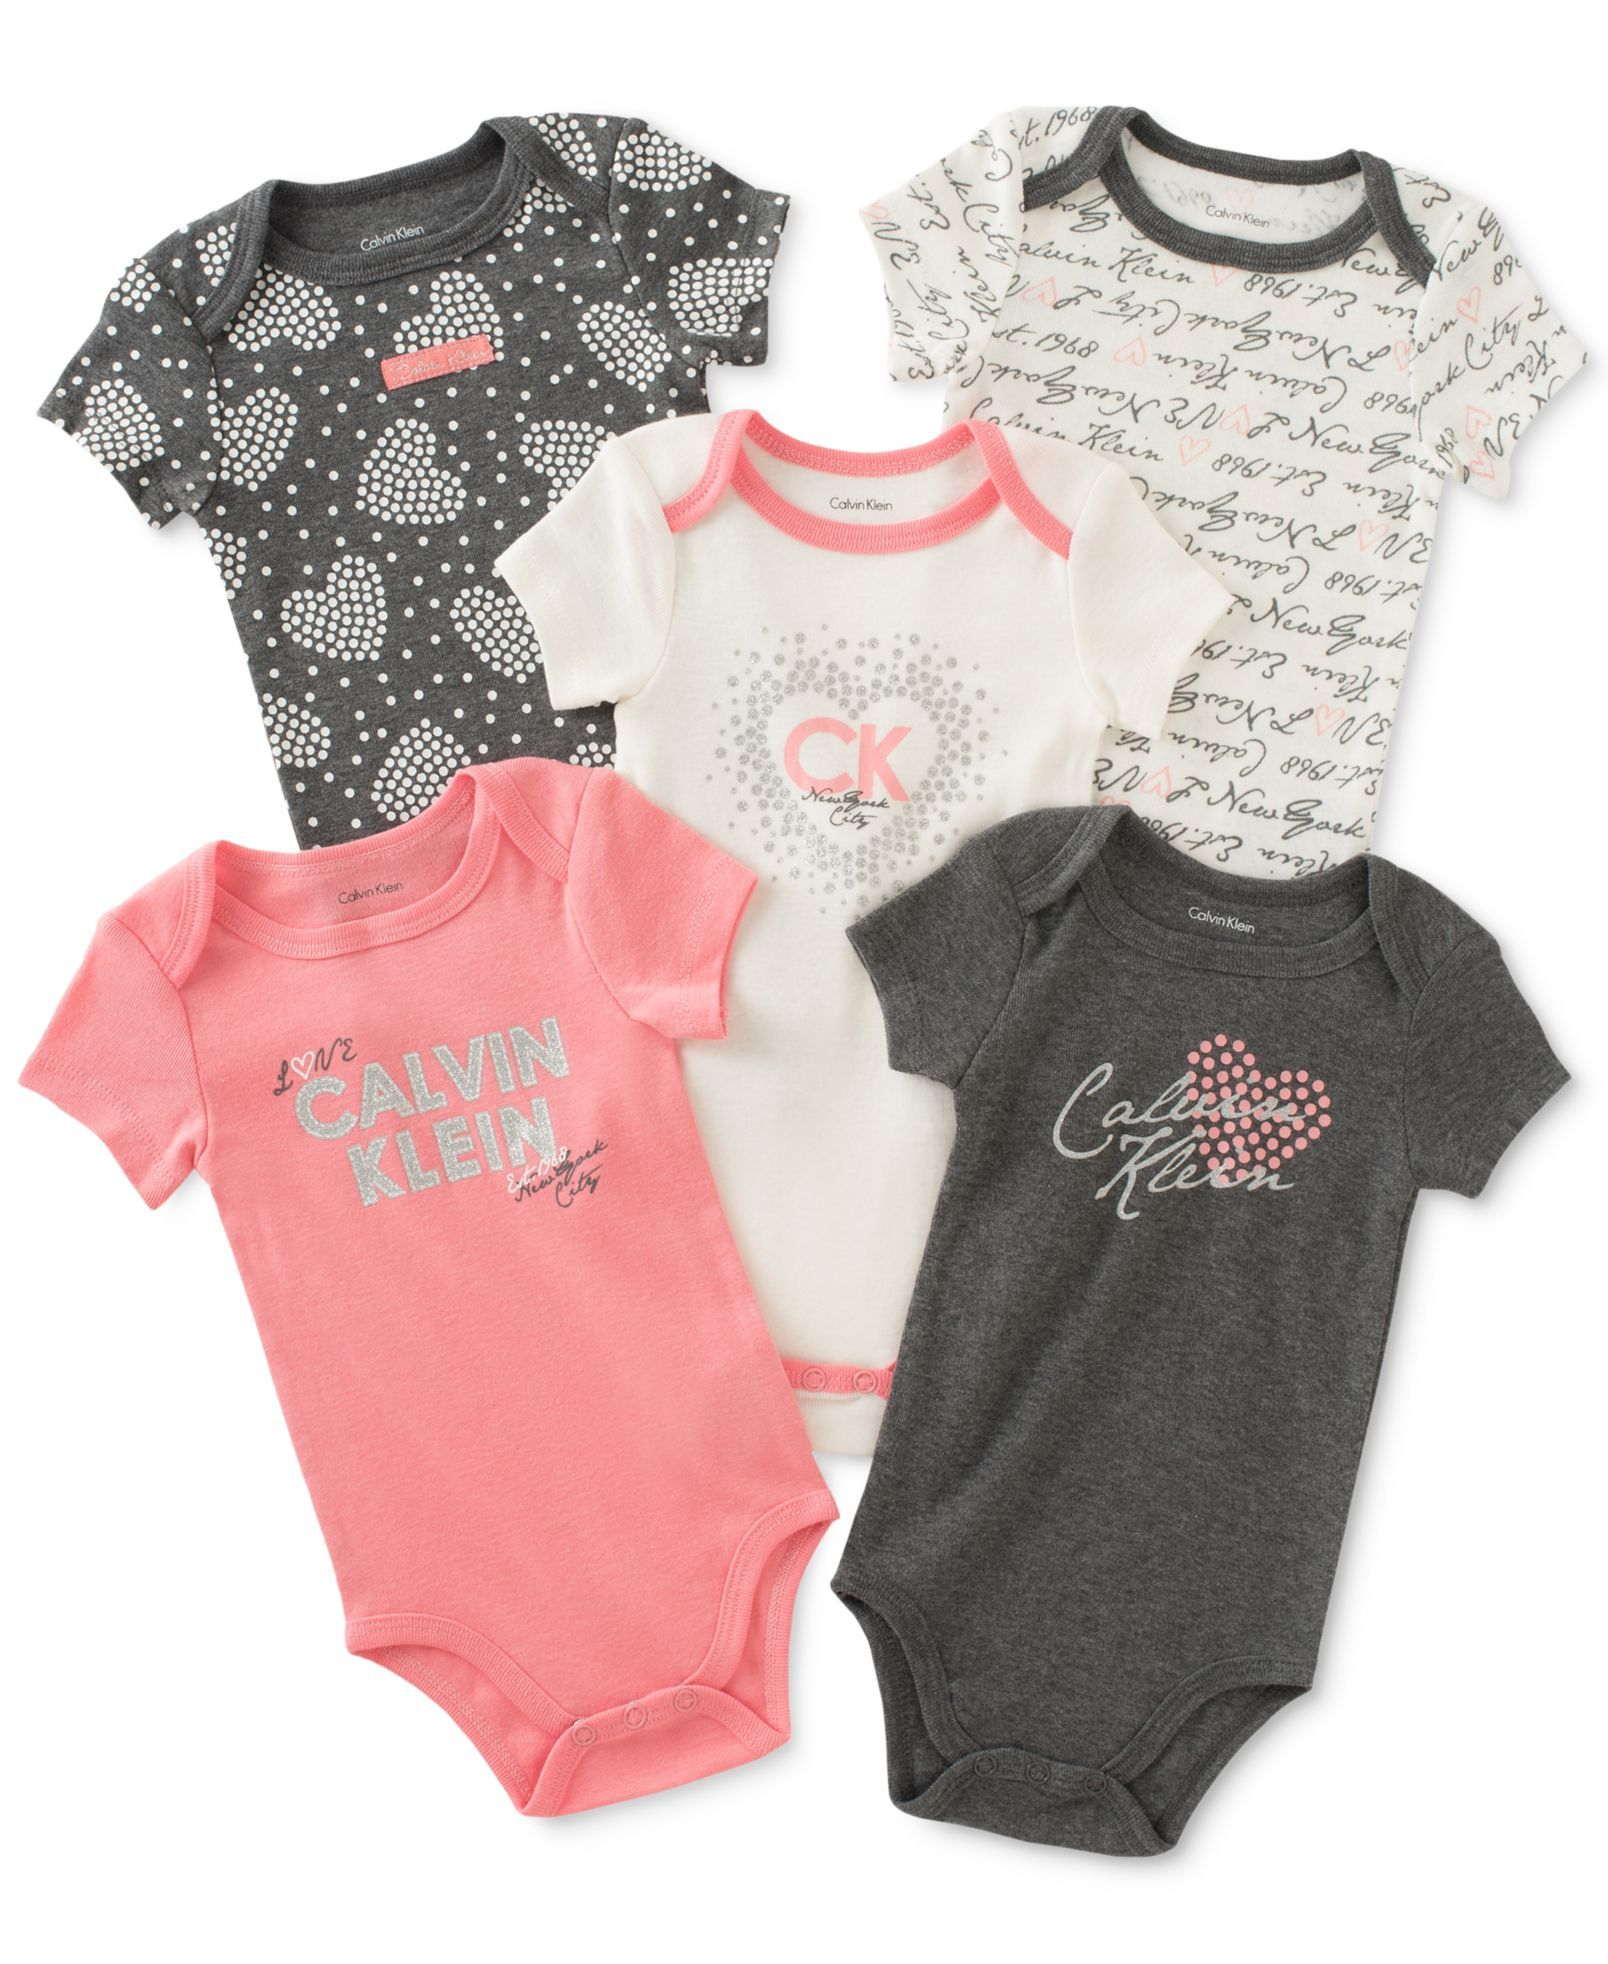 9ec72ee575 Macy s on Wondermall - Calvin Klein Baby Girls  5-Pk. New York City    Hearts Bodysuits